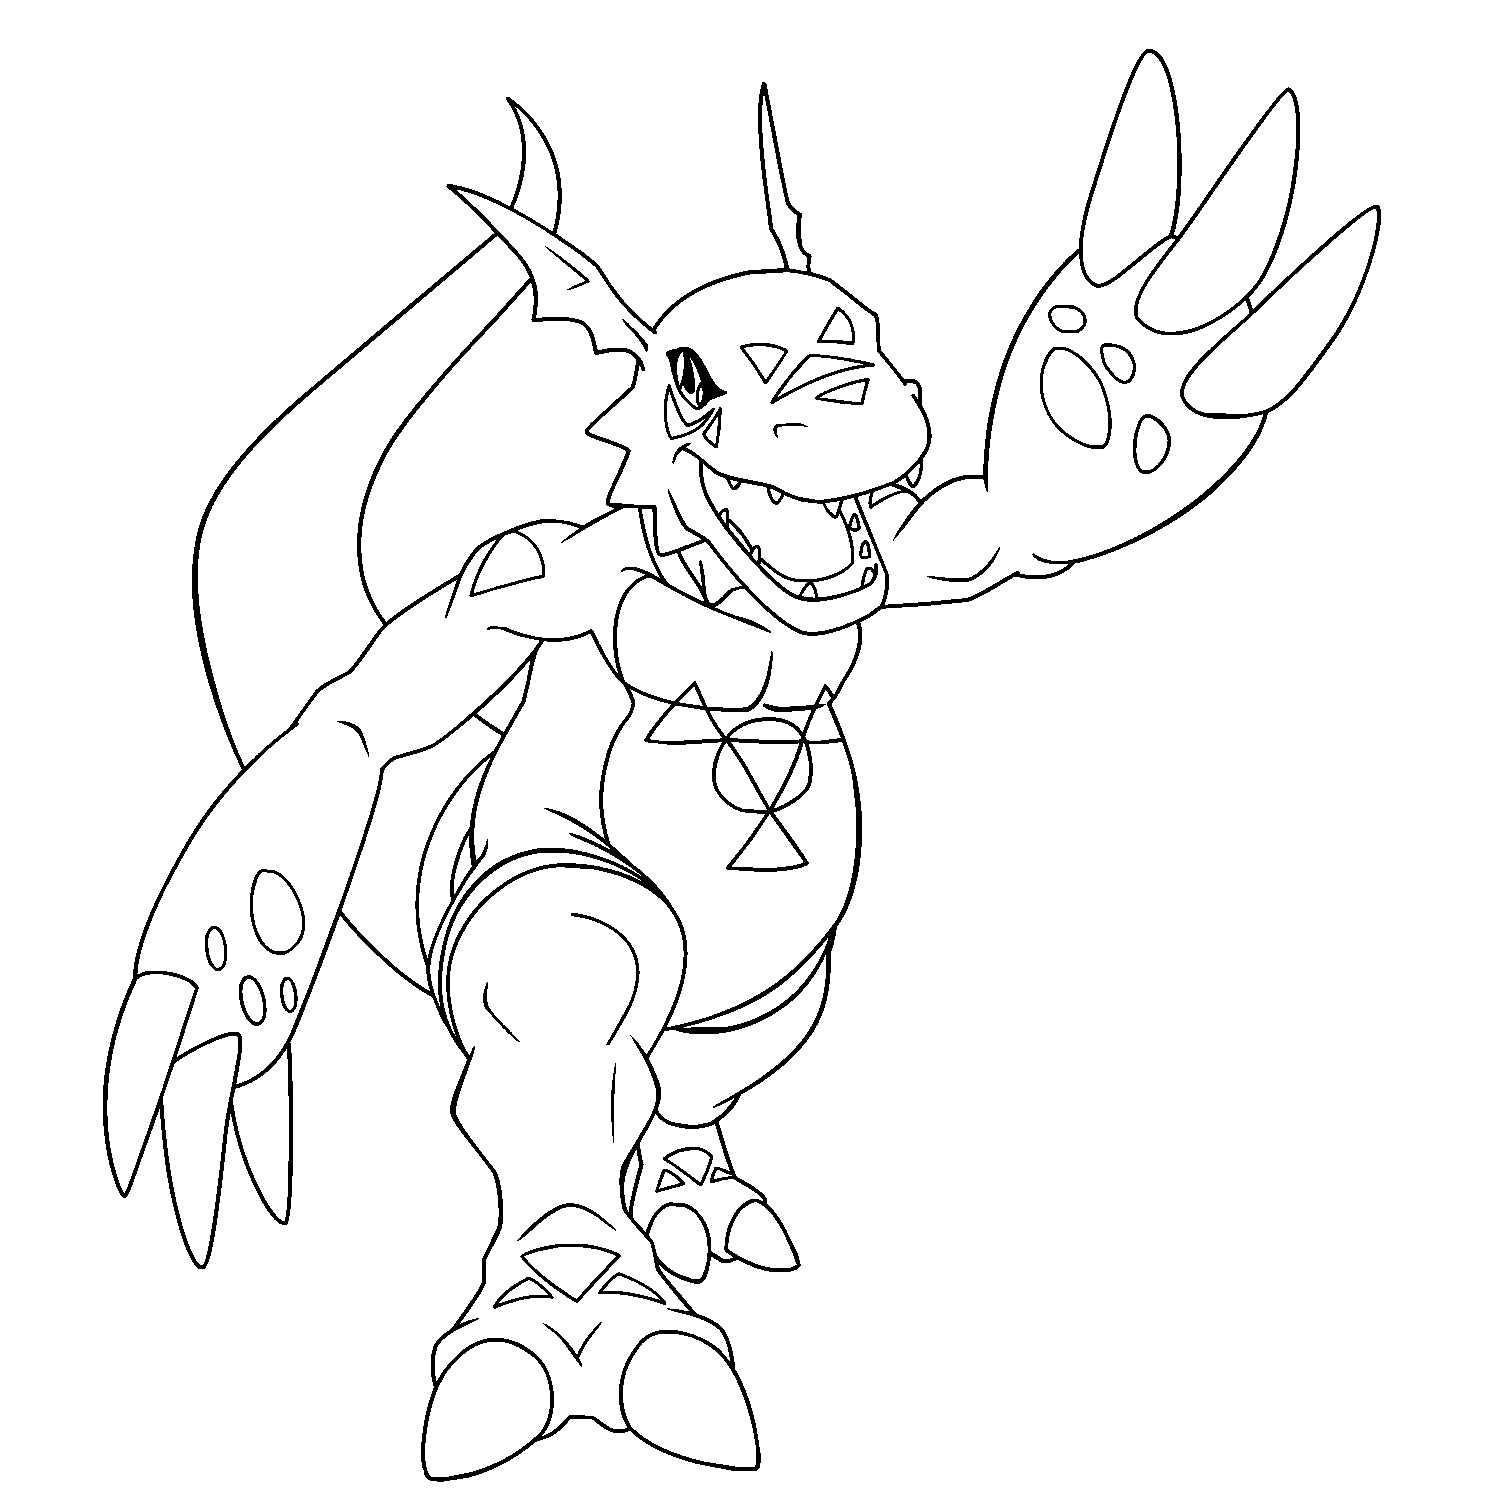 1500x1500 Best Of Digimon Coloring Pages Logo And Design Ideas